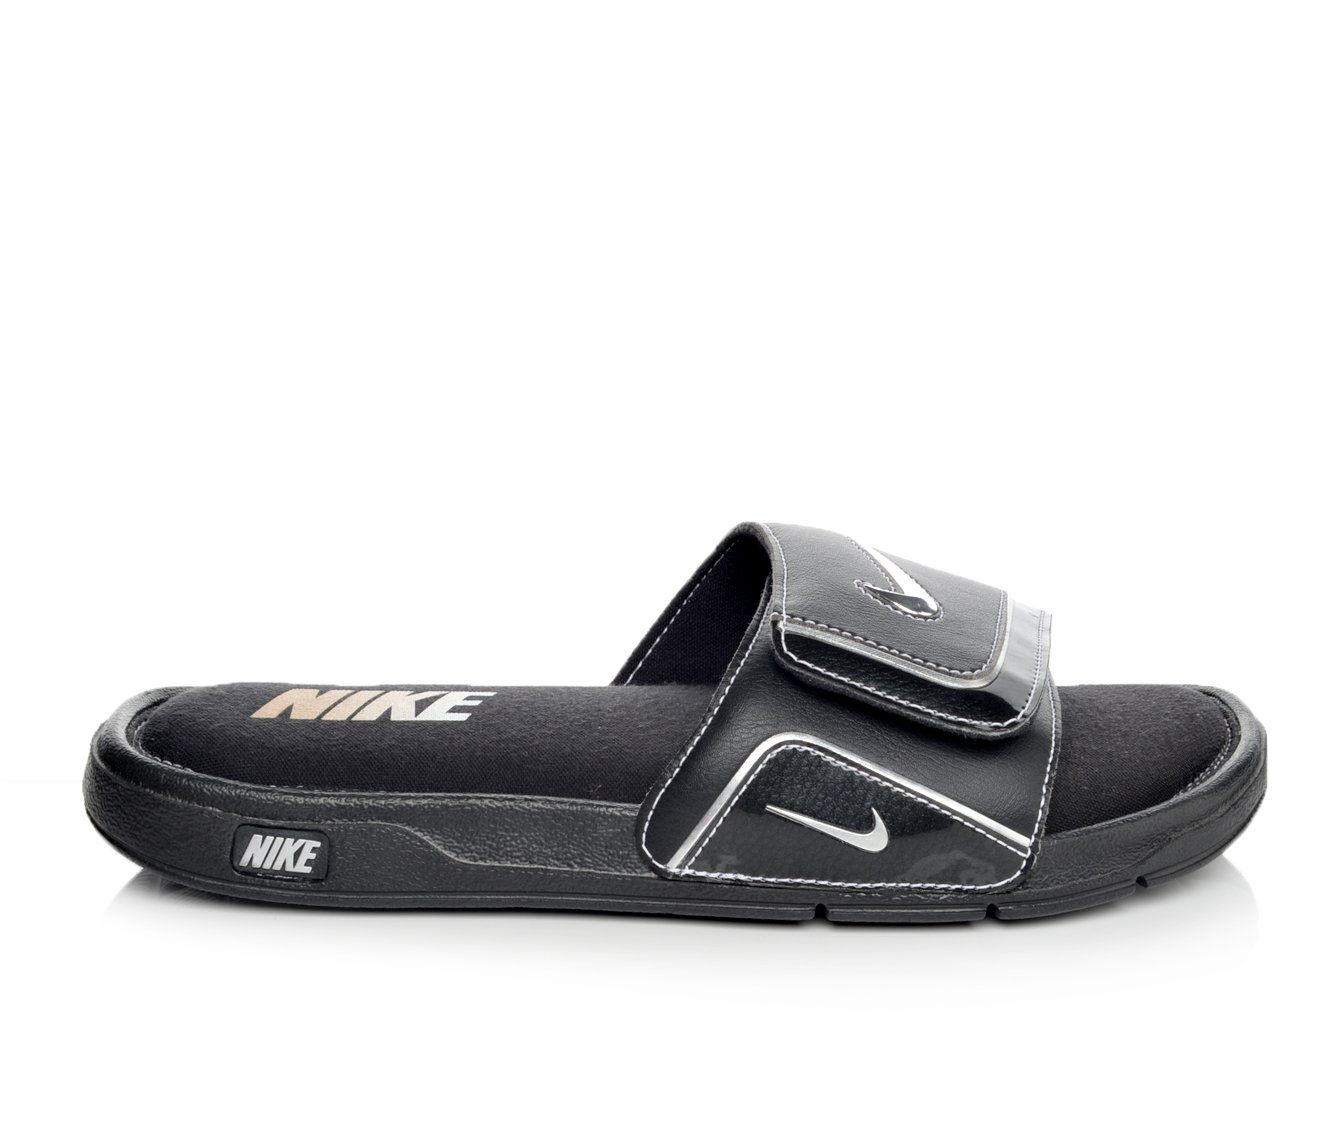 buy cheap new arrivals Men's Nike Comfort Slide 2 Sport Slides Blk/Met Sil/Wht